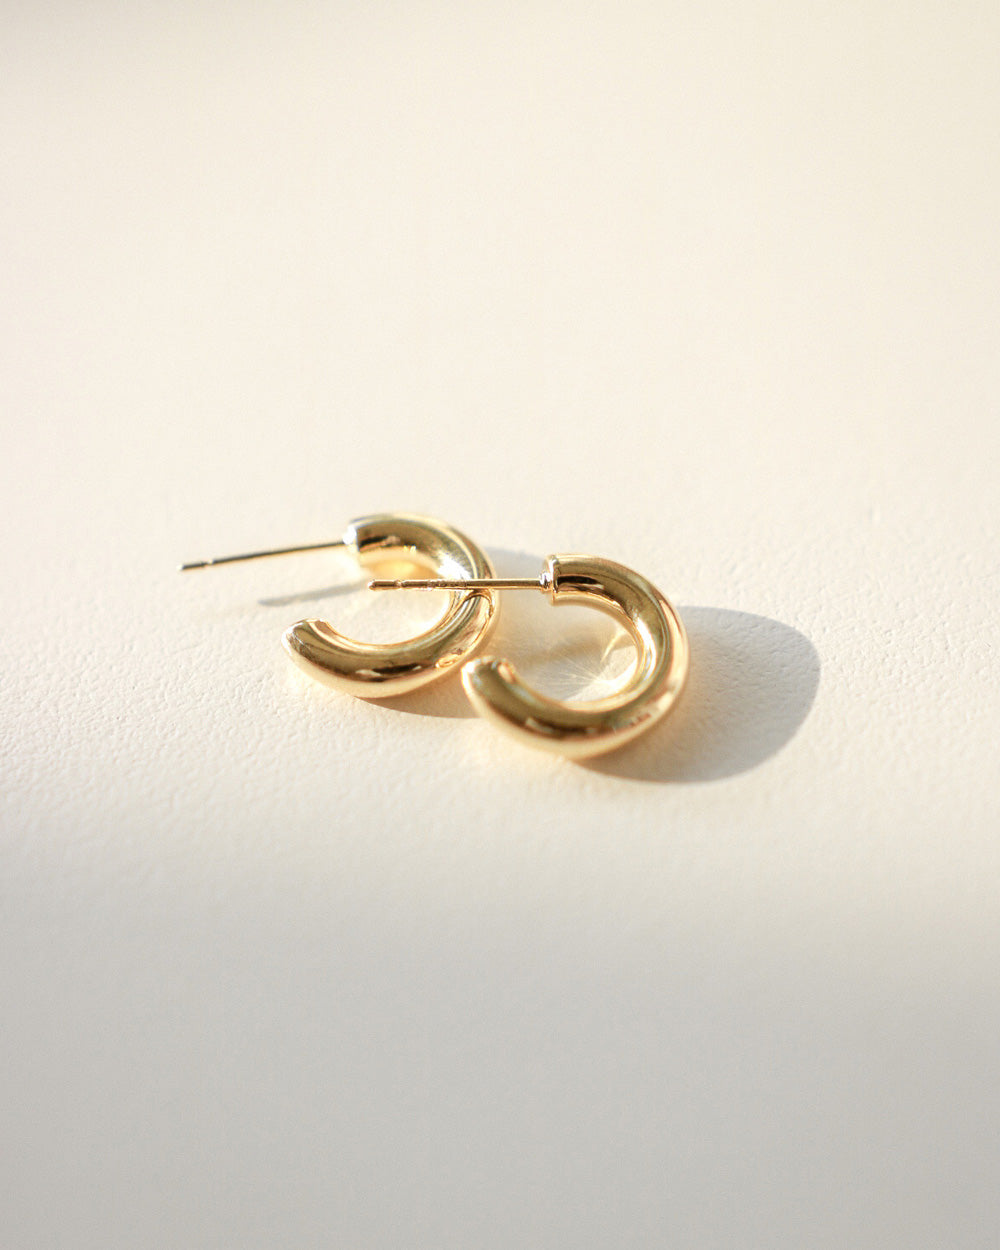 Cute minimalist gold hoop earrings by The Hexad